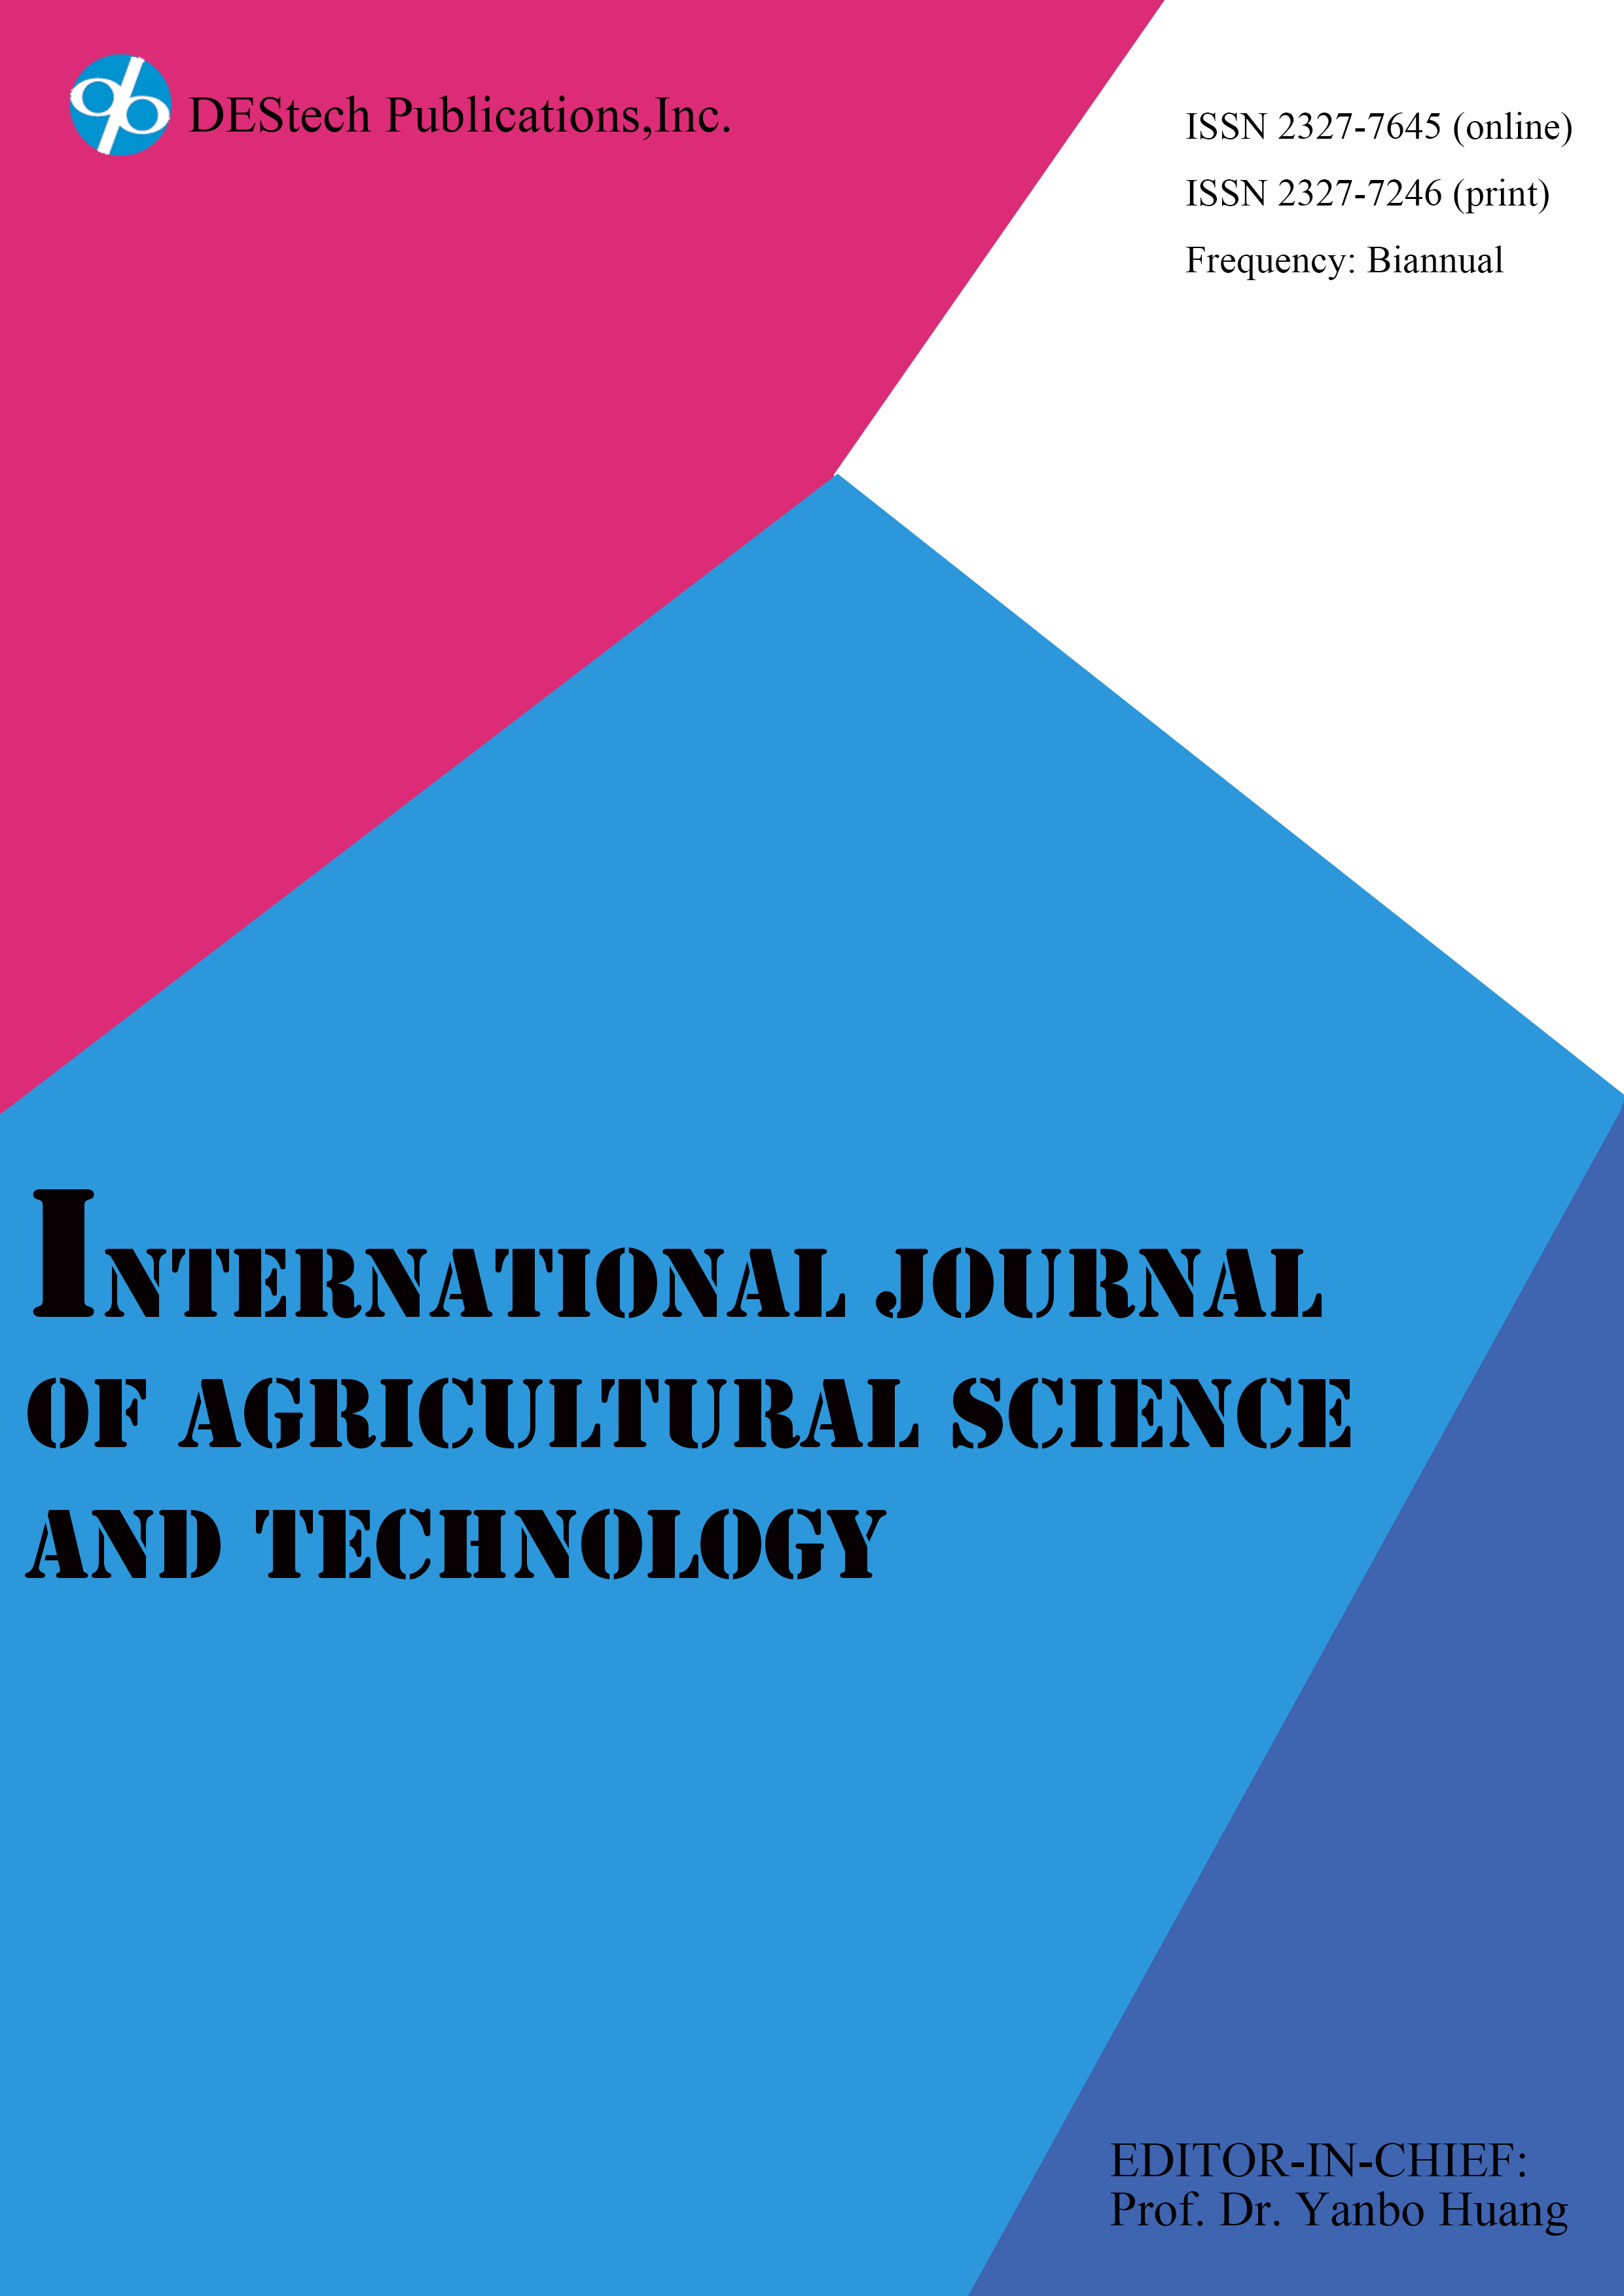 agricultural science 2 essay Agricultural science this subject will offer the student comprehensive view of soil, plant and animal sciences that would make them aware of the inter-linkages between these subjectsthis linkage between the soil, plant and animal systems would form the basis for making viable and ecological approaches to the production of food and fiber.